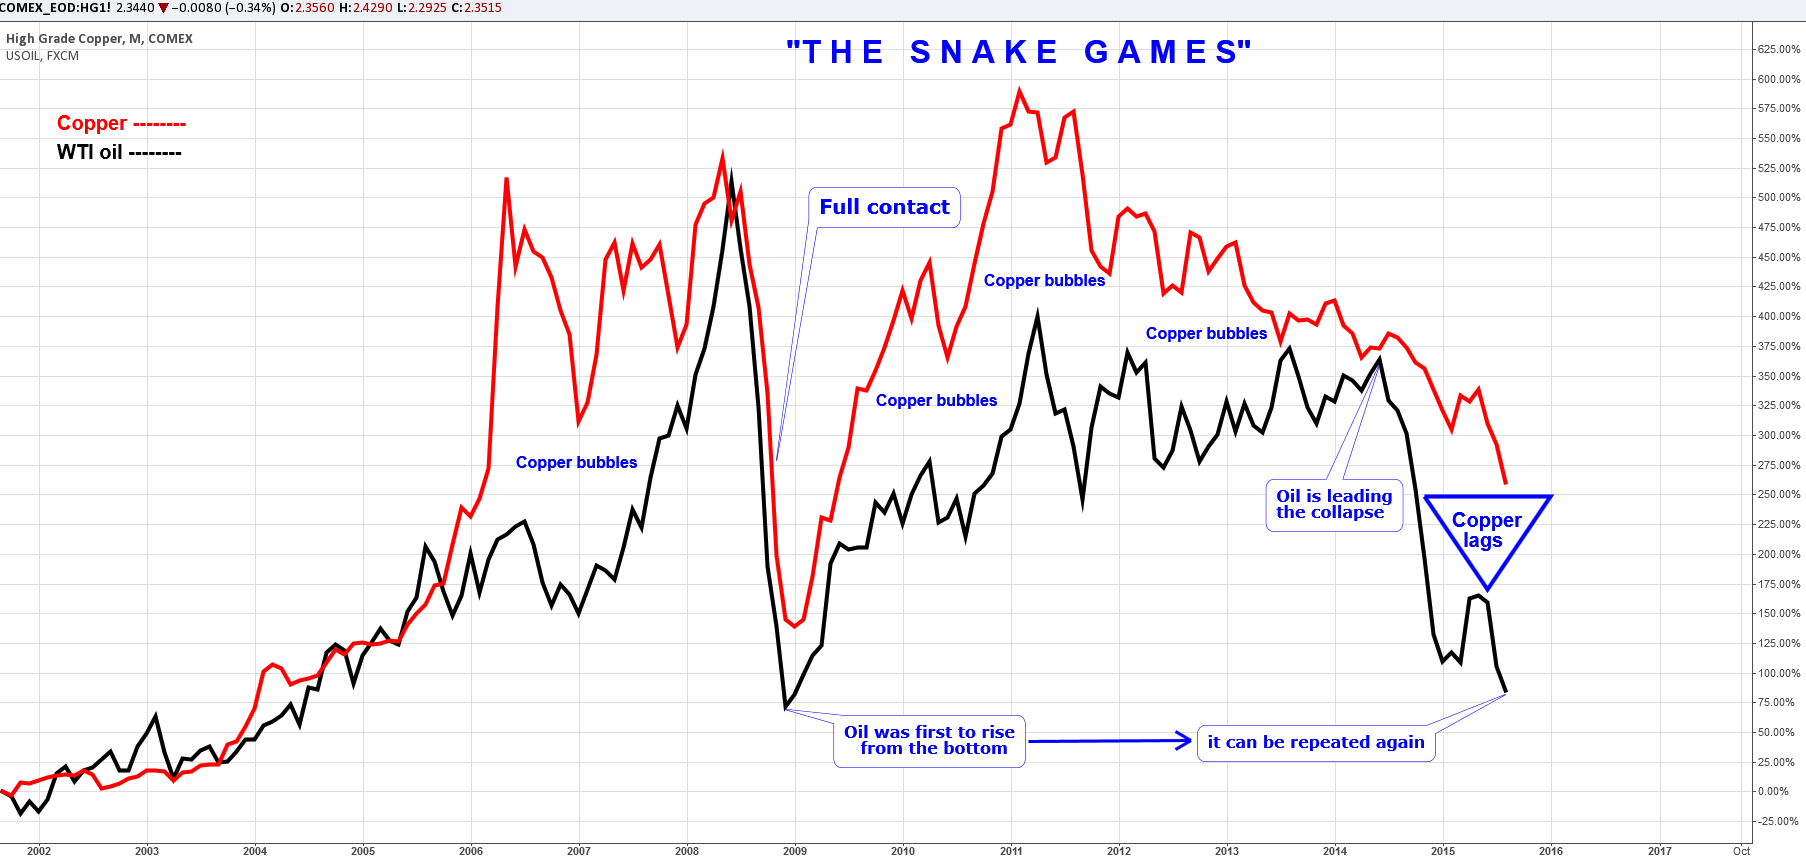 The Snake Games